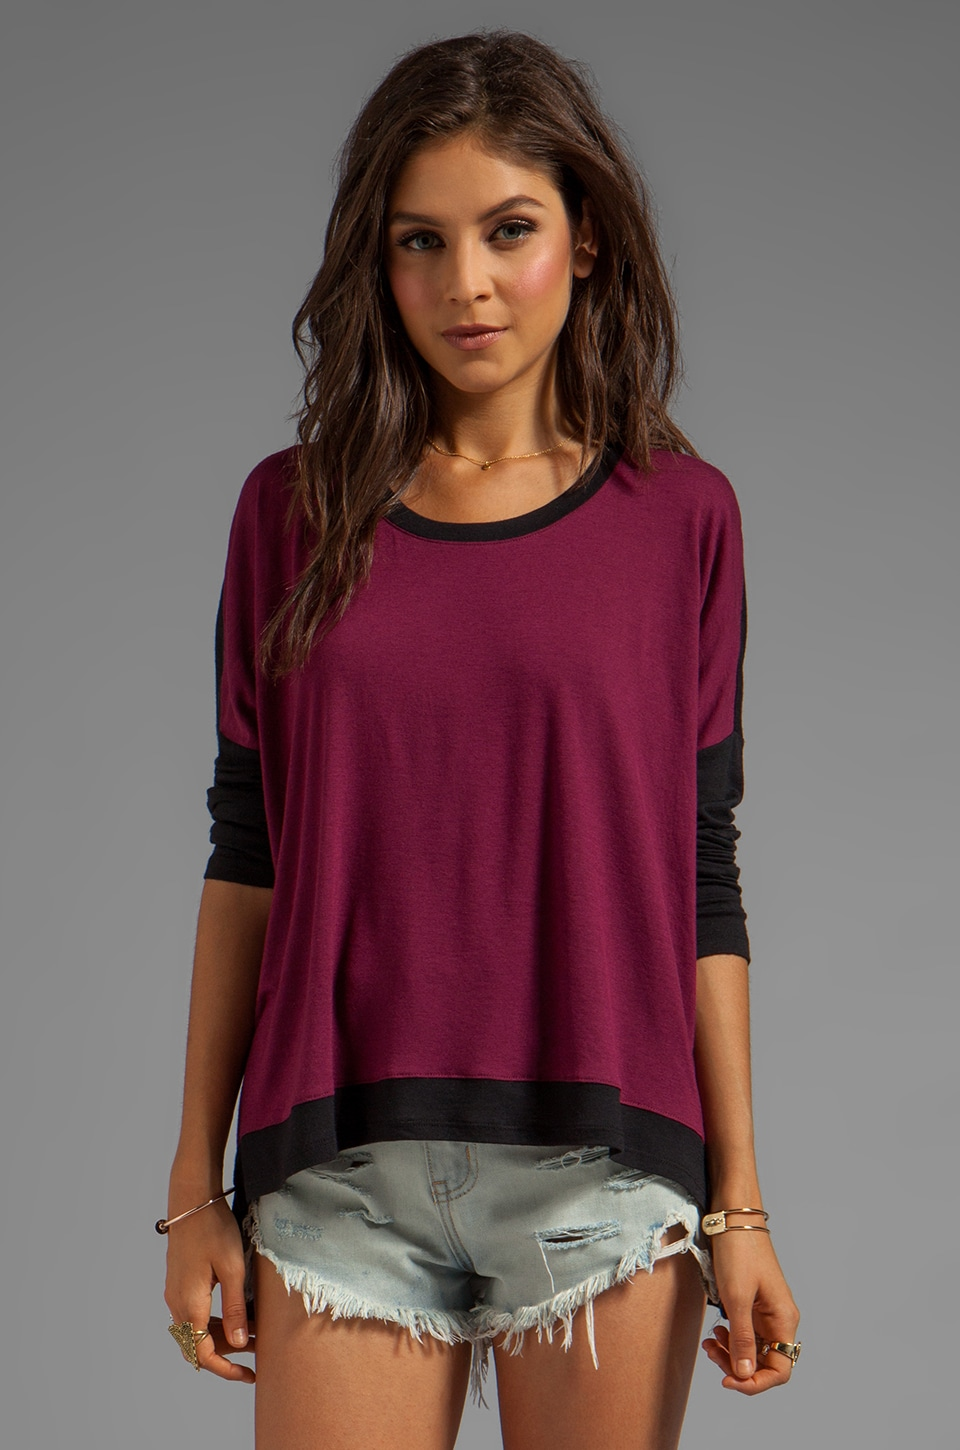 Bobi Sweater Colorblock Sweater in Merlot/Black